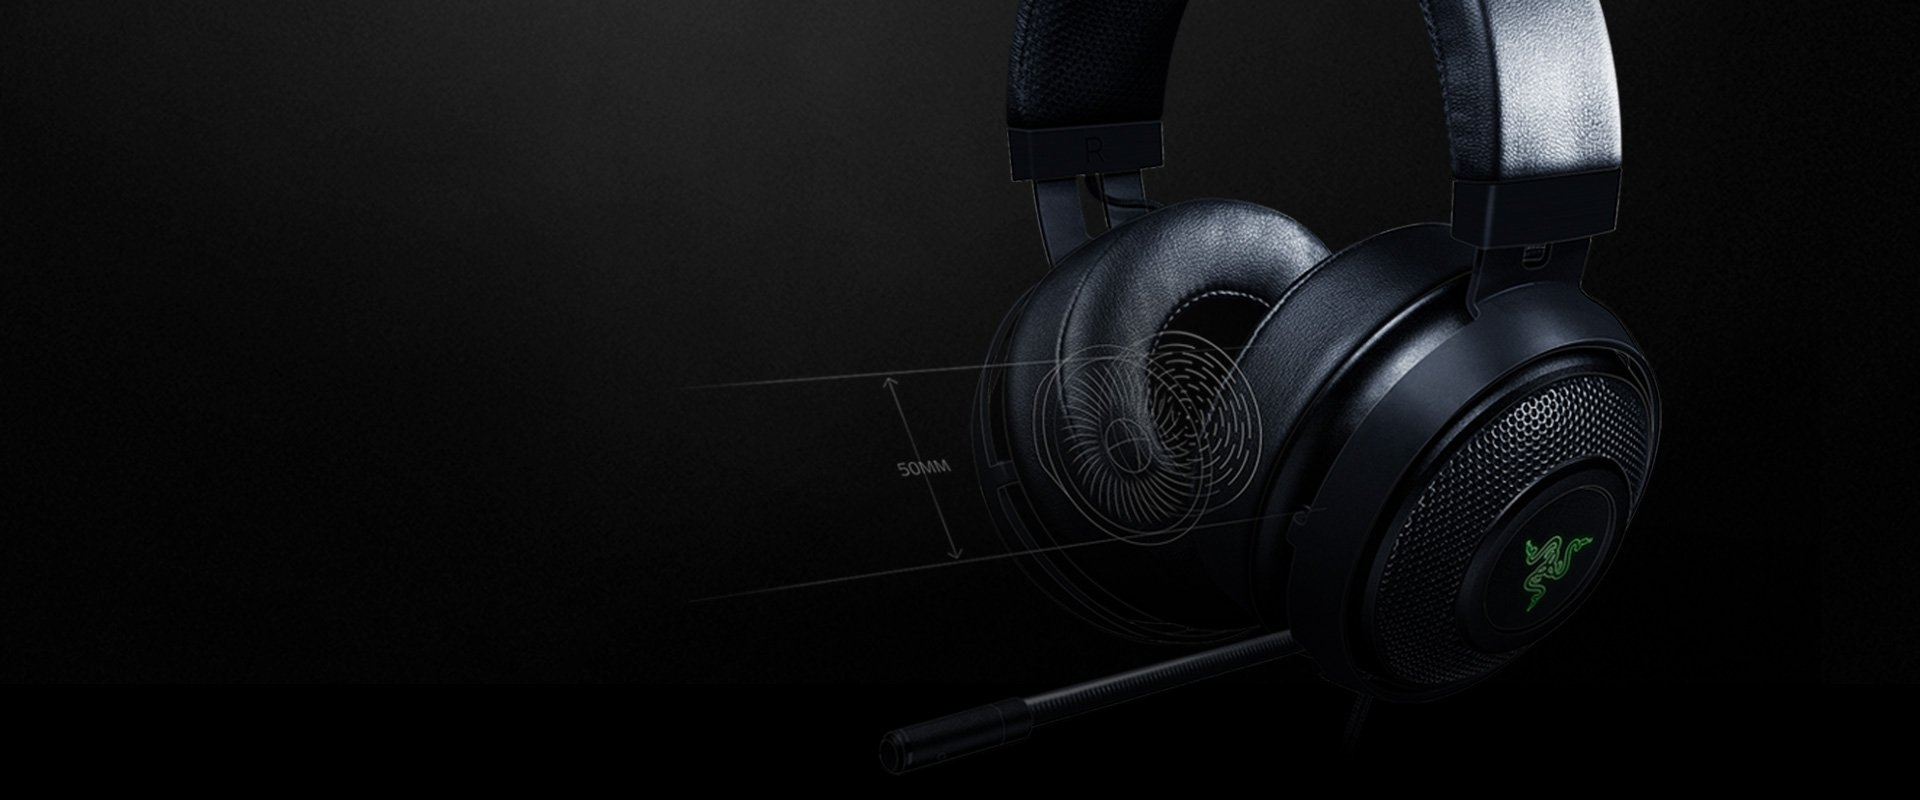 Razer Kraken 71 V2 Oval Ear Gaming Headset Mercury Edition Rz04 Pro Black Analog Whats More The Engine Is Entirely Customizable Via Synapse So You Can Determine Best Placement For Audio Channels To Fit Your Own